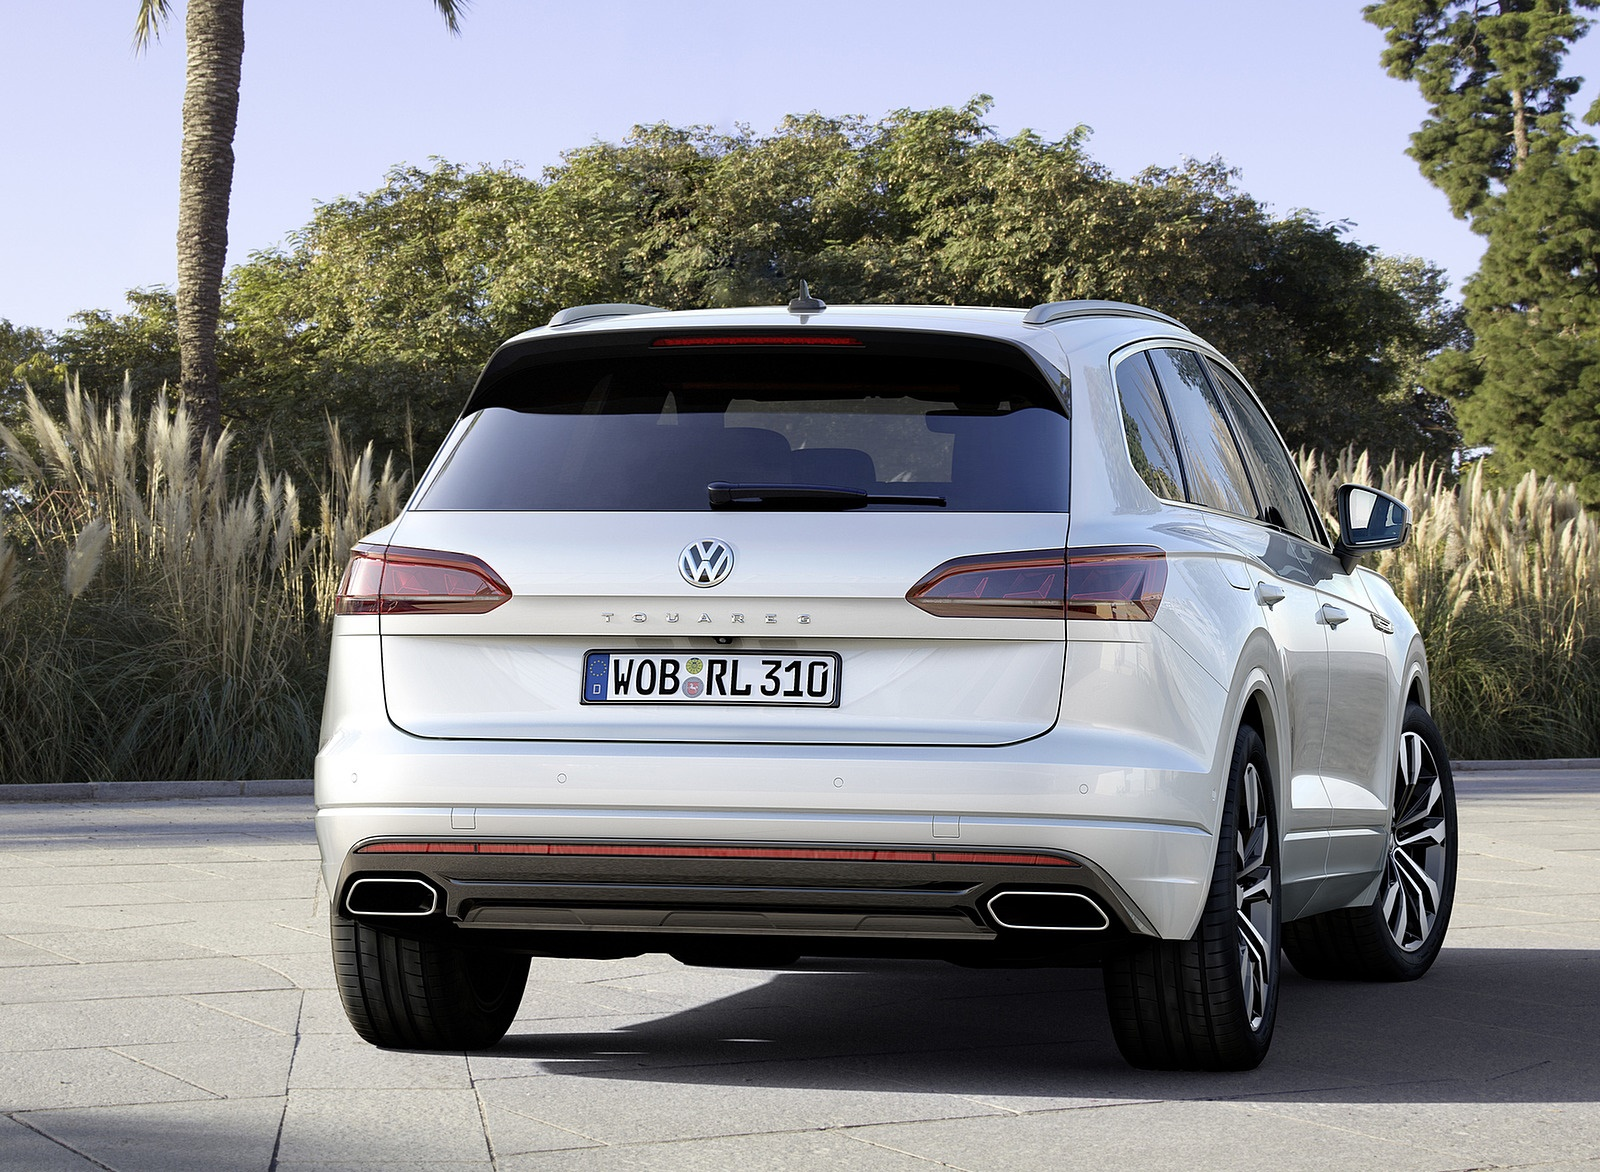 2019 Volkswagen Touareg R-Line Rear Wallpapers (6)